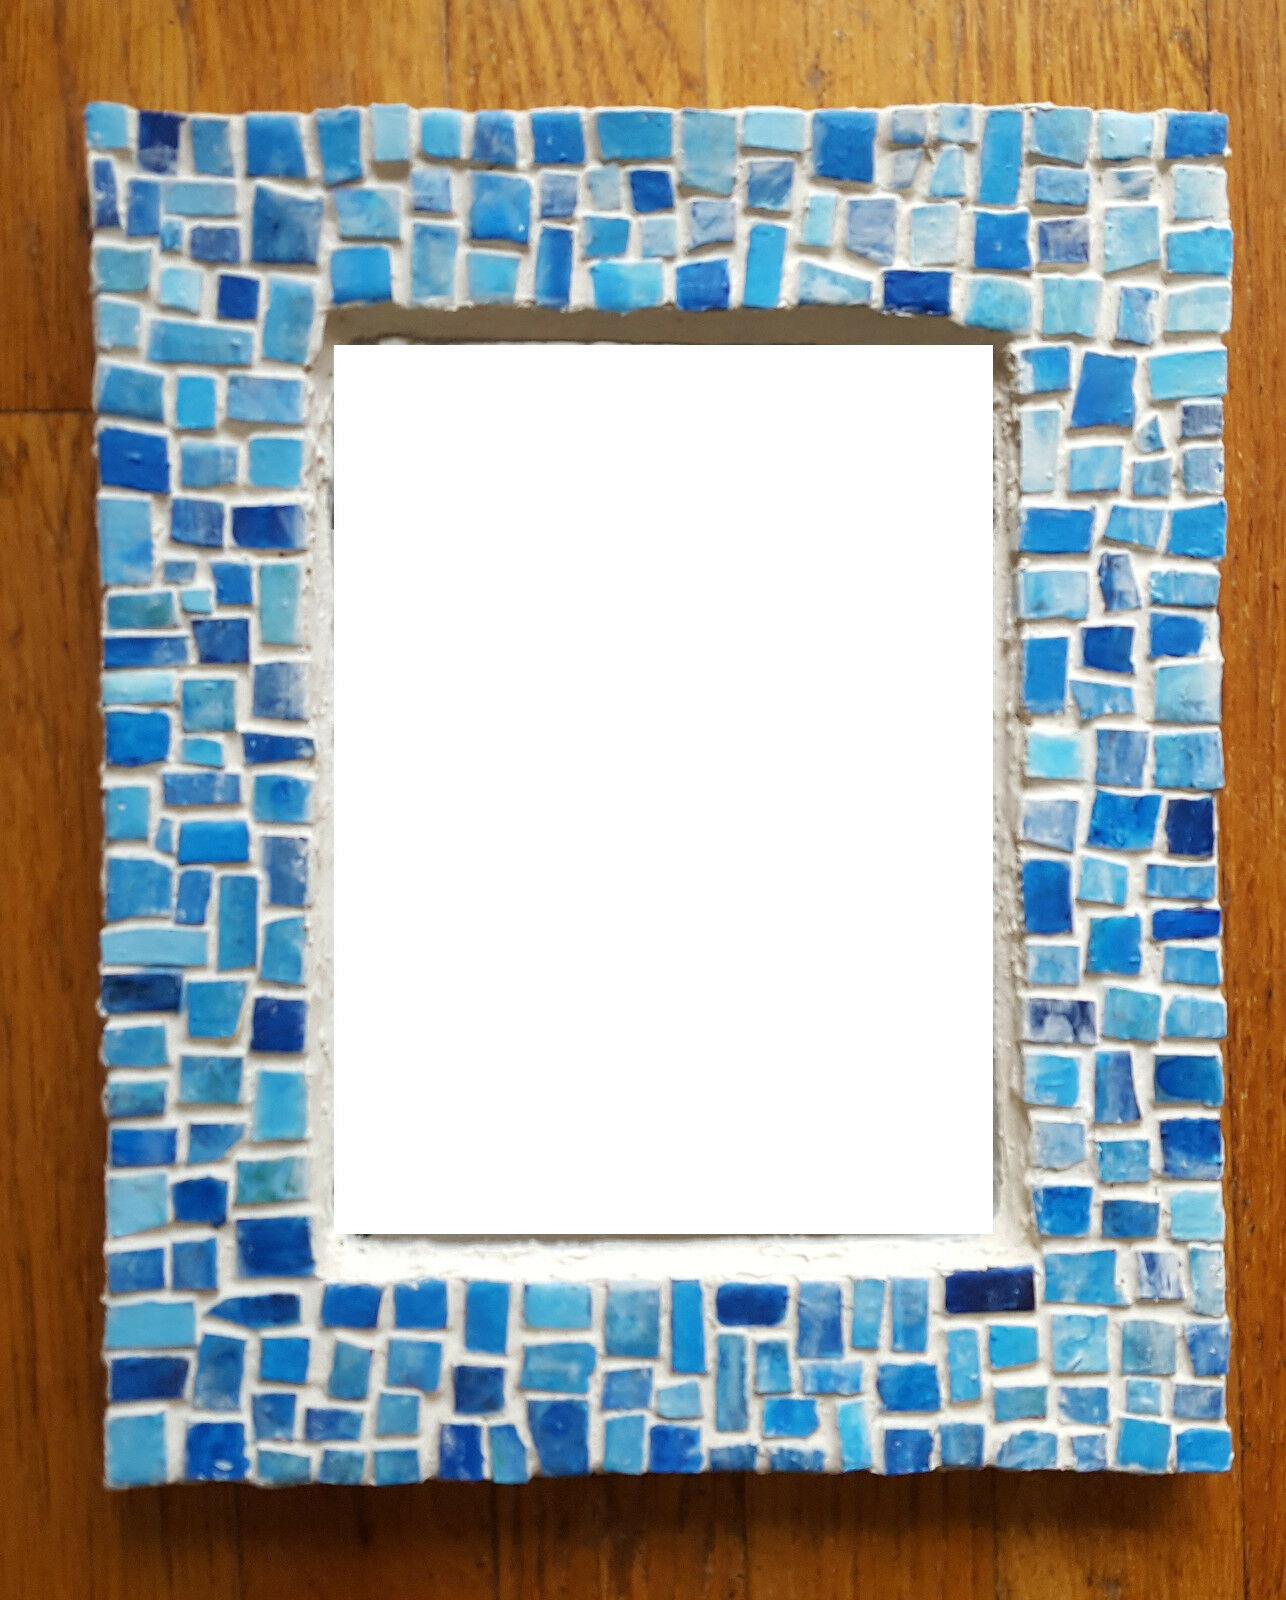 Bathroom Mosaic Mirror - Hand Made - 11 1/2 x 9 1/2